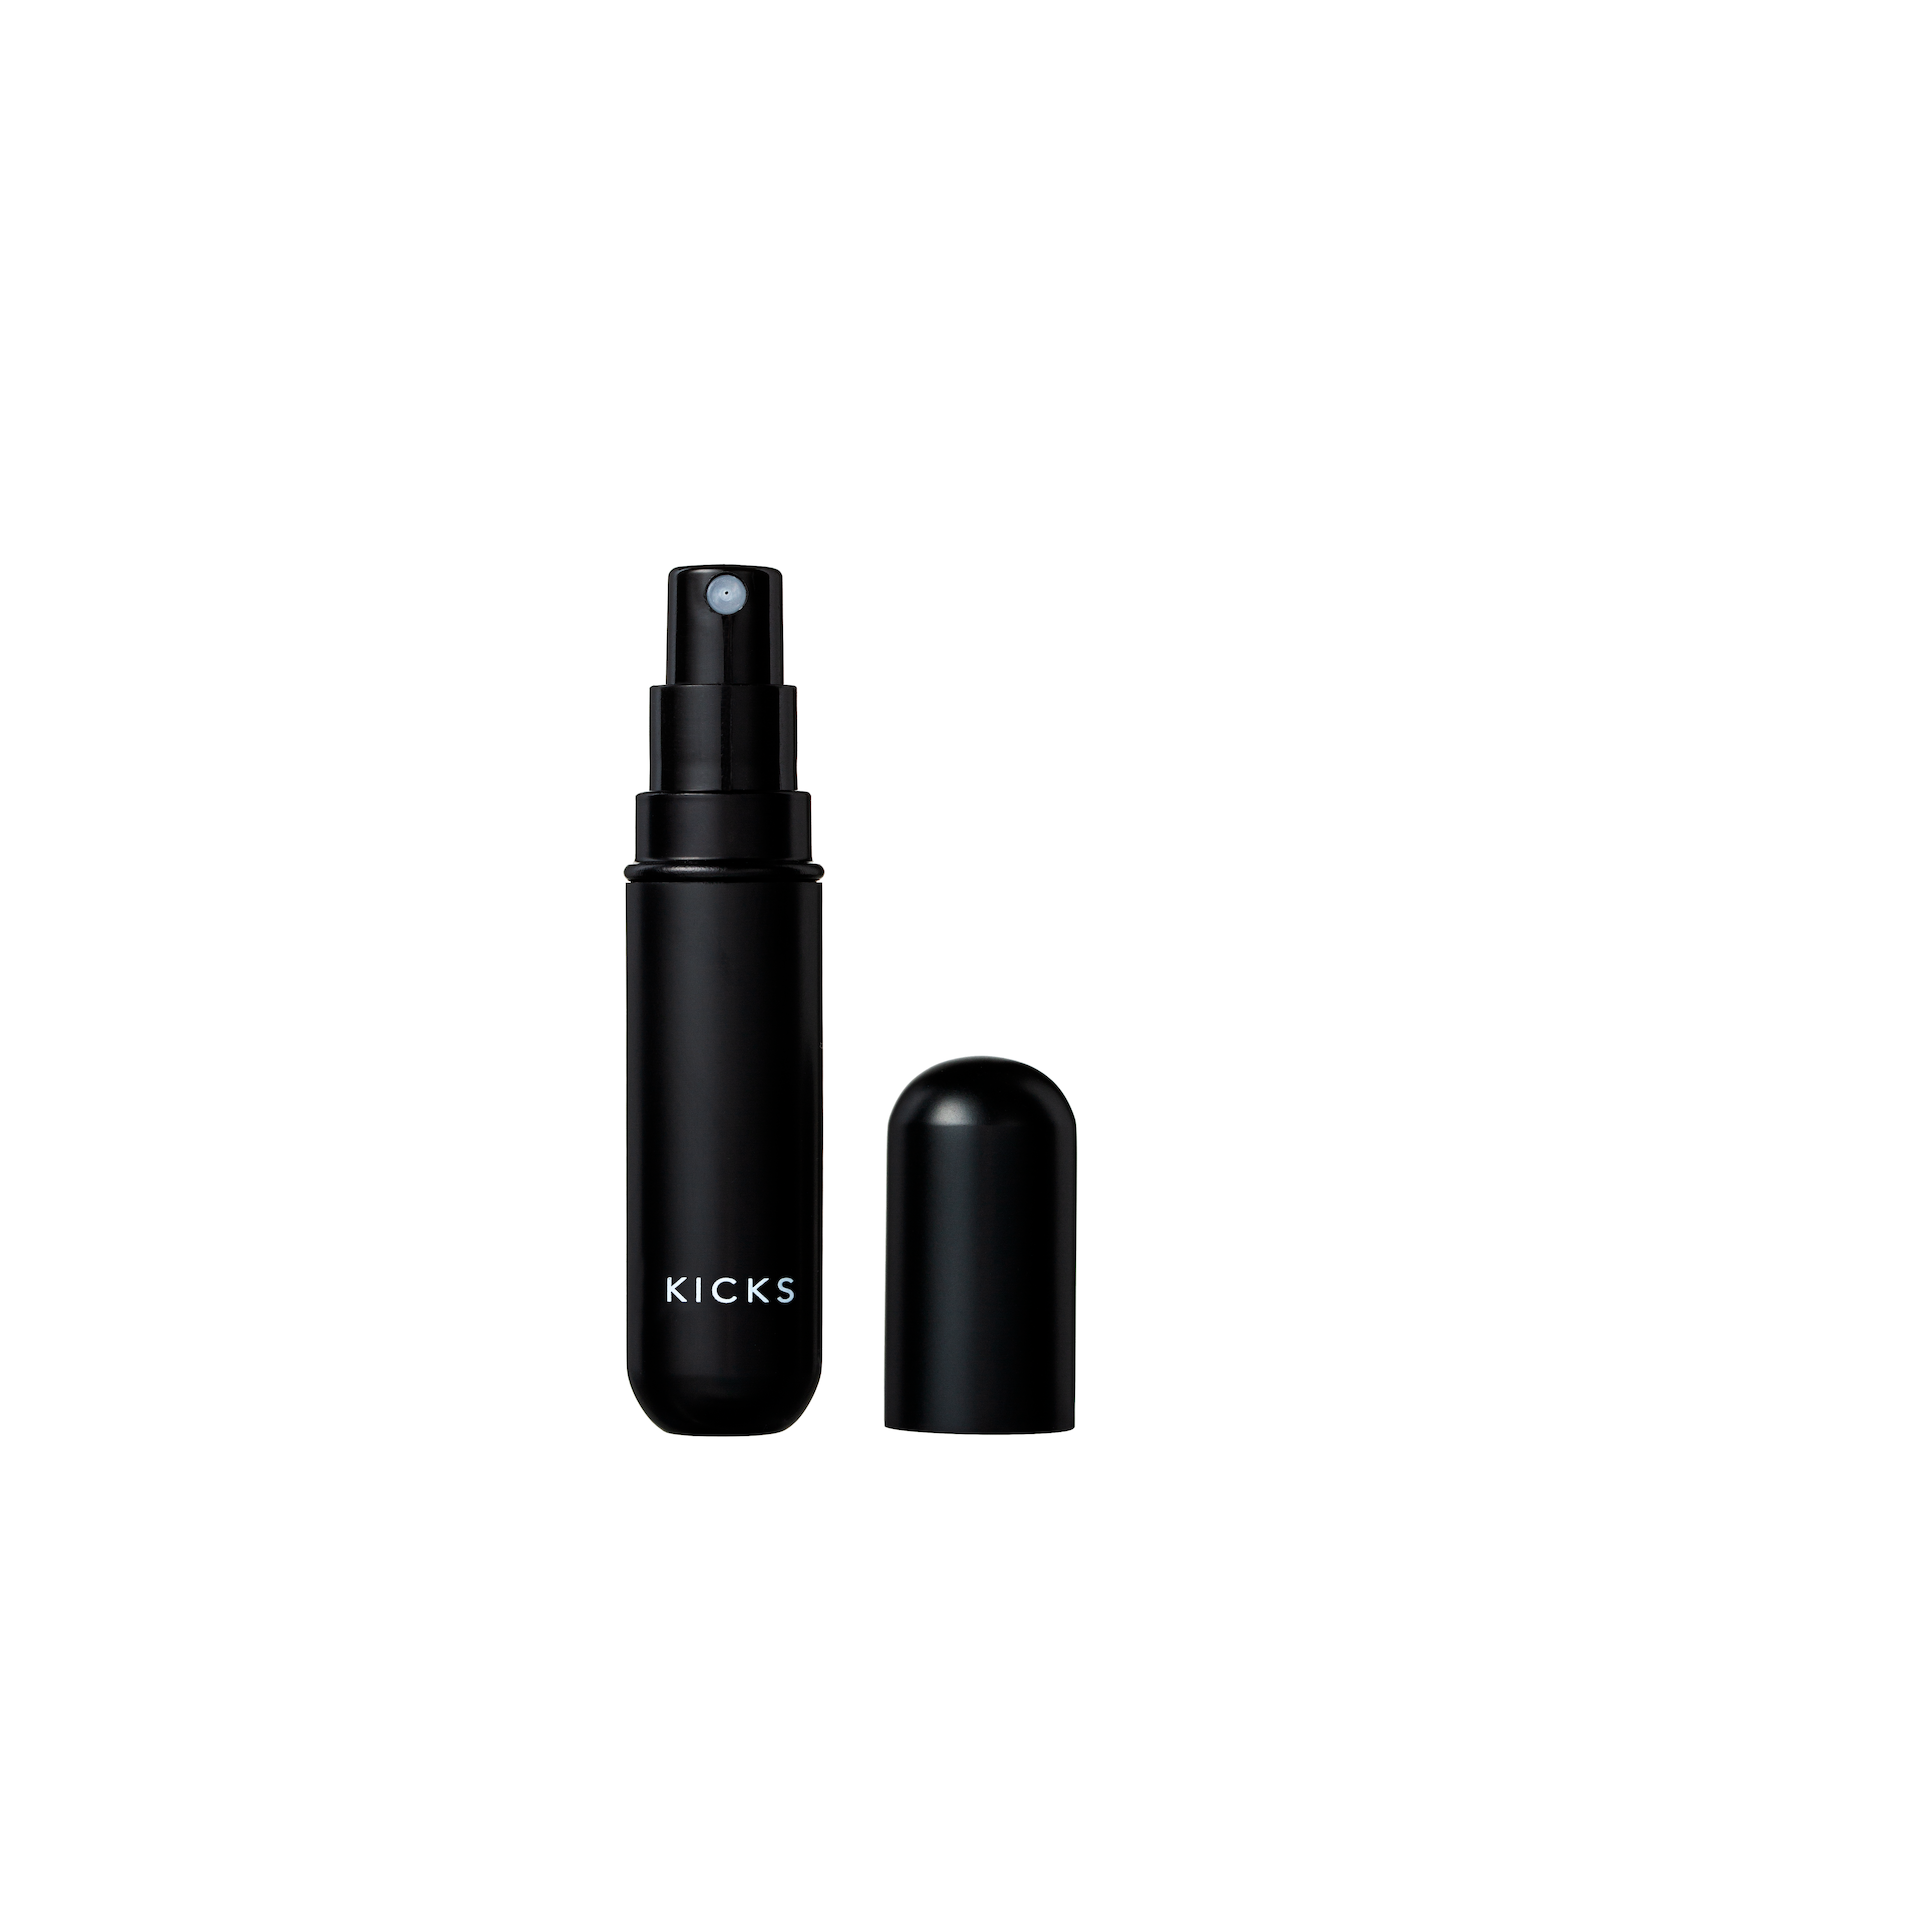 Perfume Atomizer Black